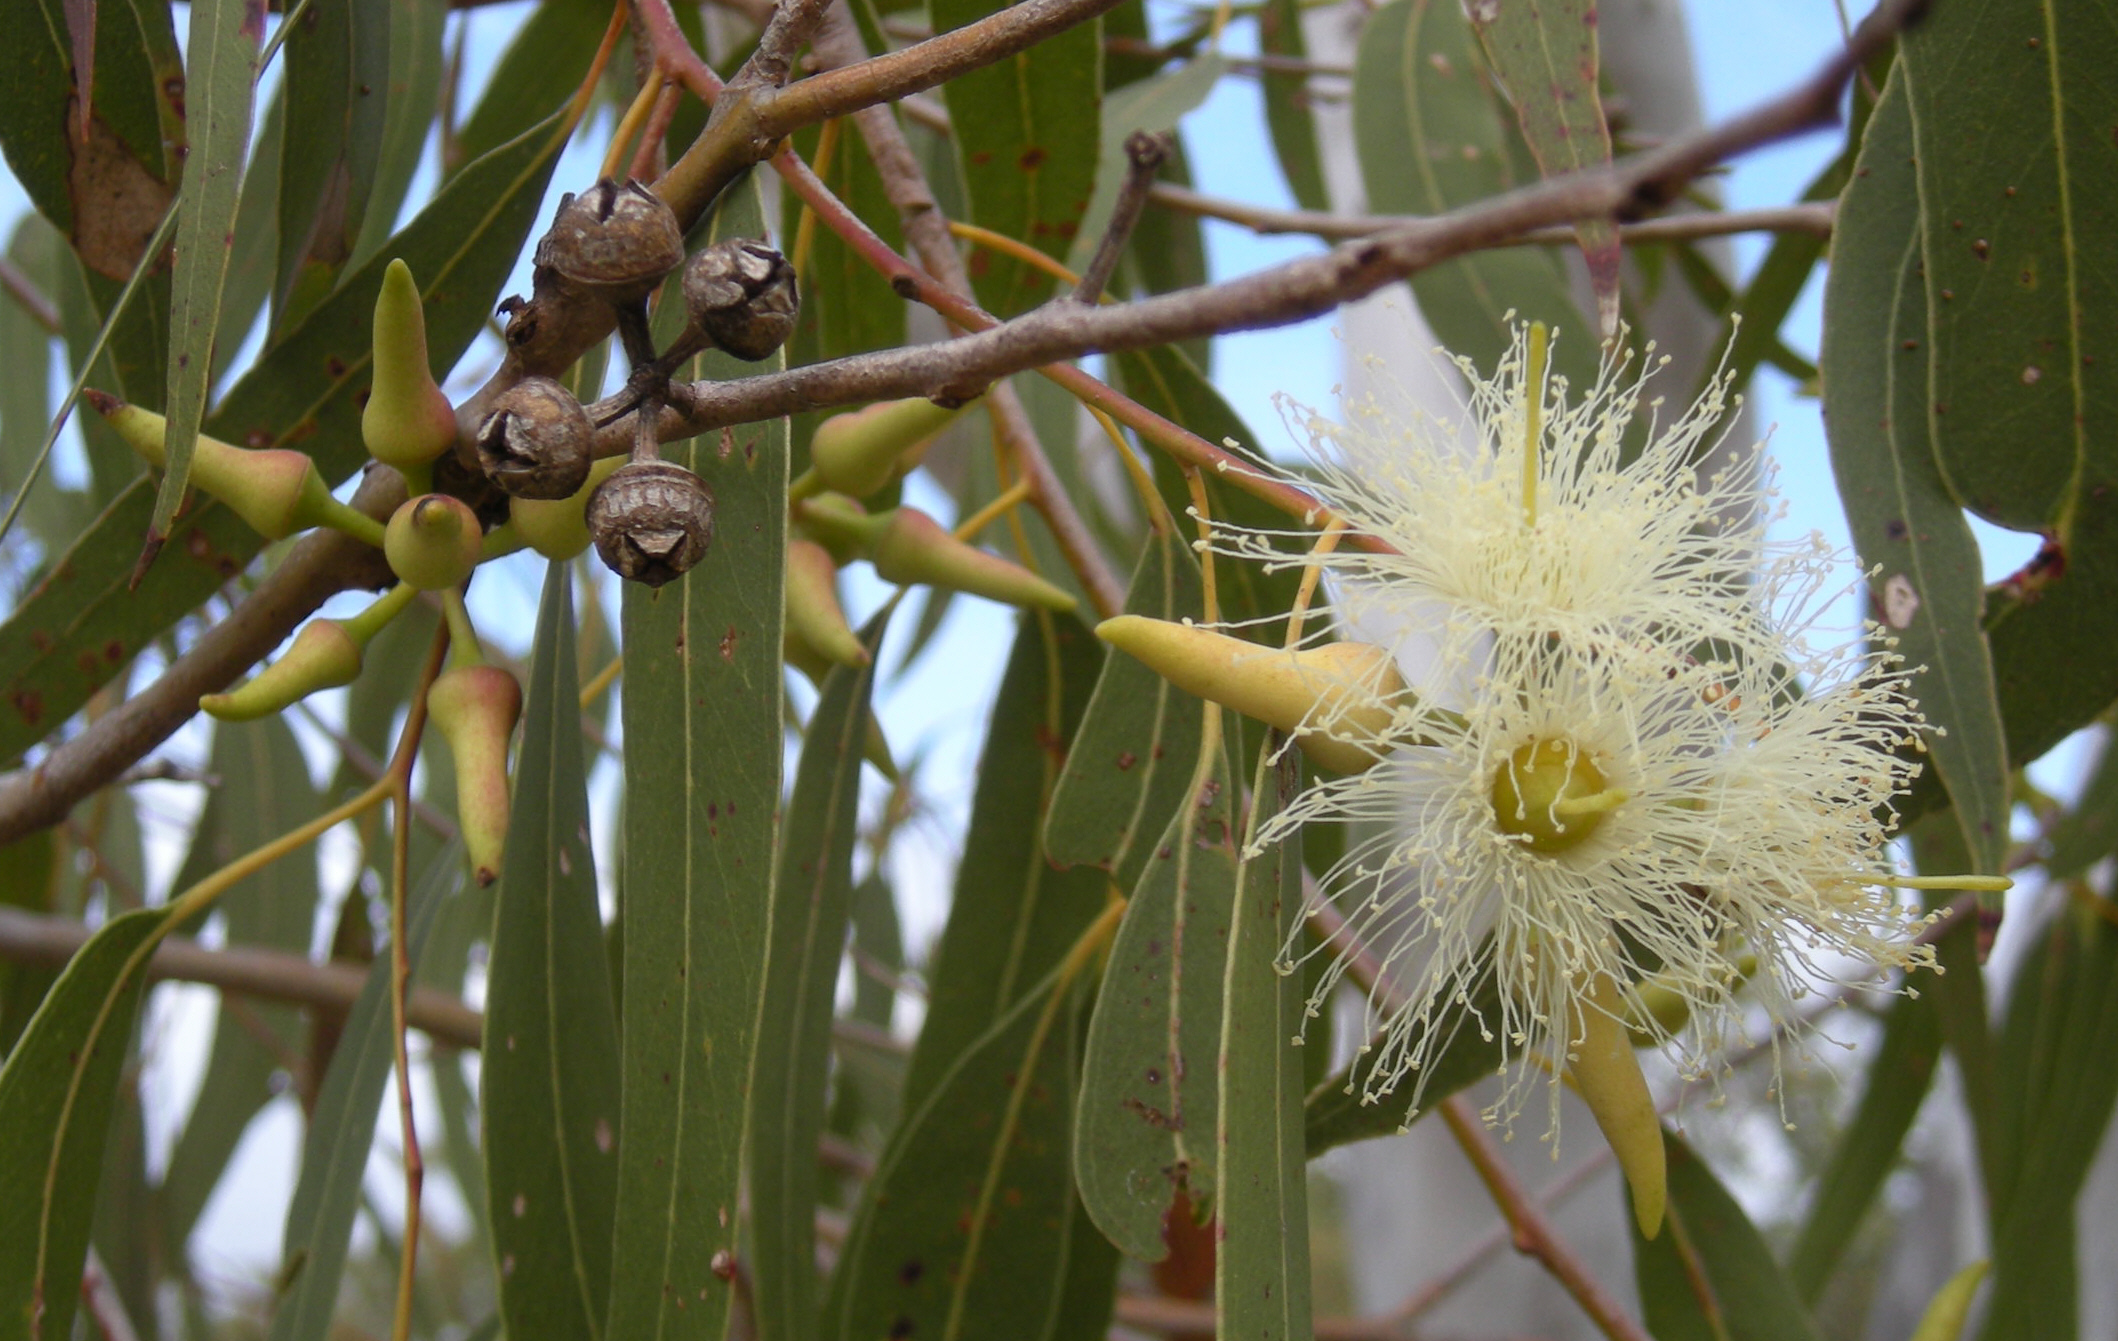 http://upload.wikimedia.org/wikipedia/commons/4/4c/Eucalyptus_tereticornis_flowers,_capsules,_buds_and_foliage.jpeg